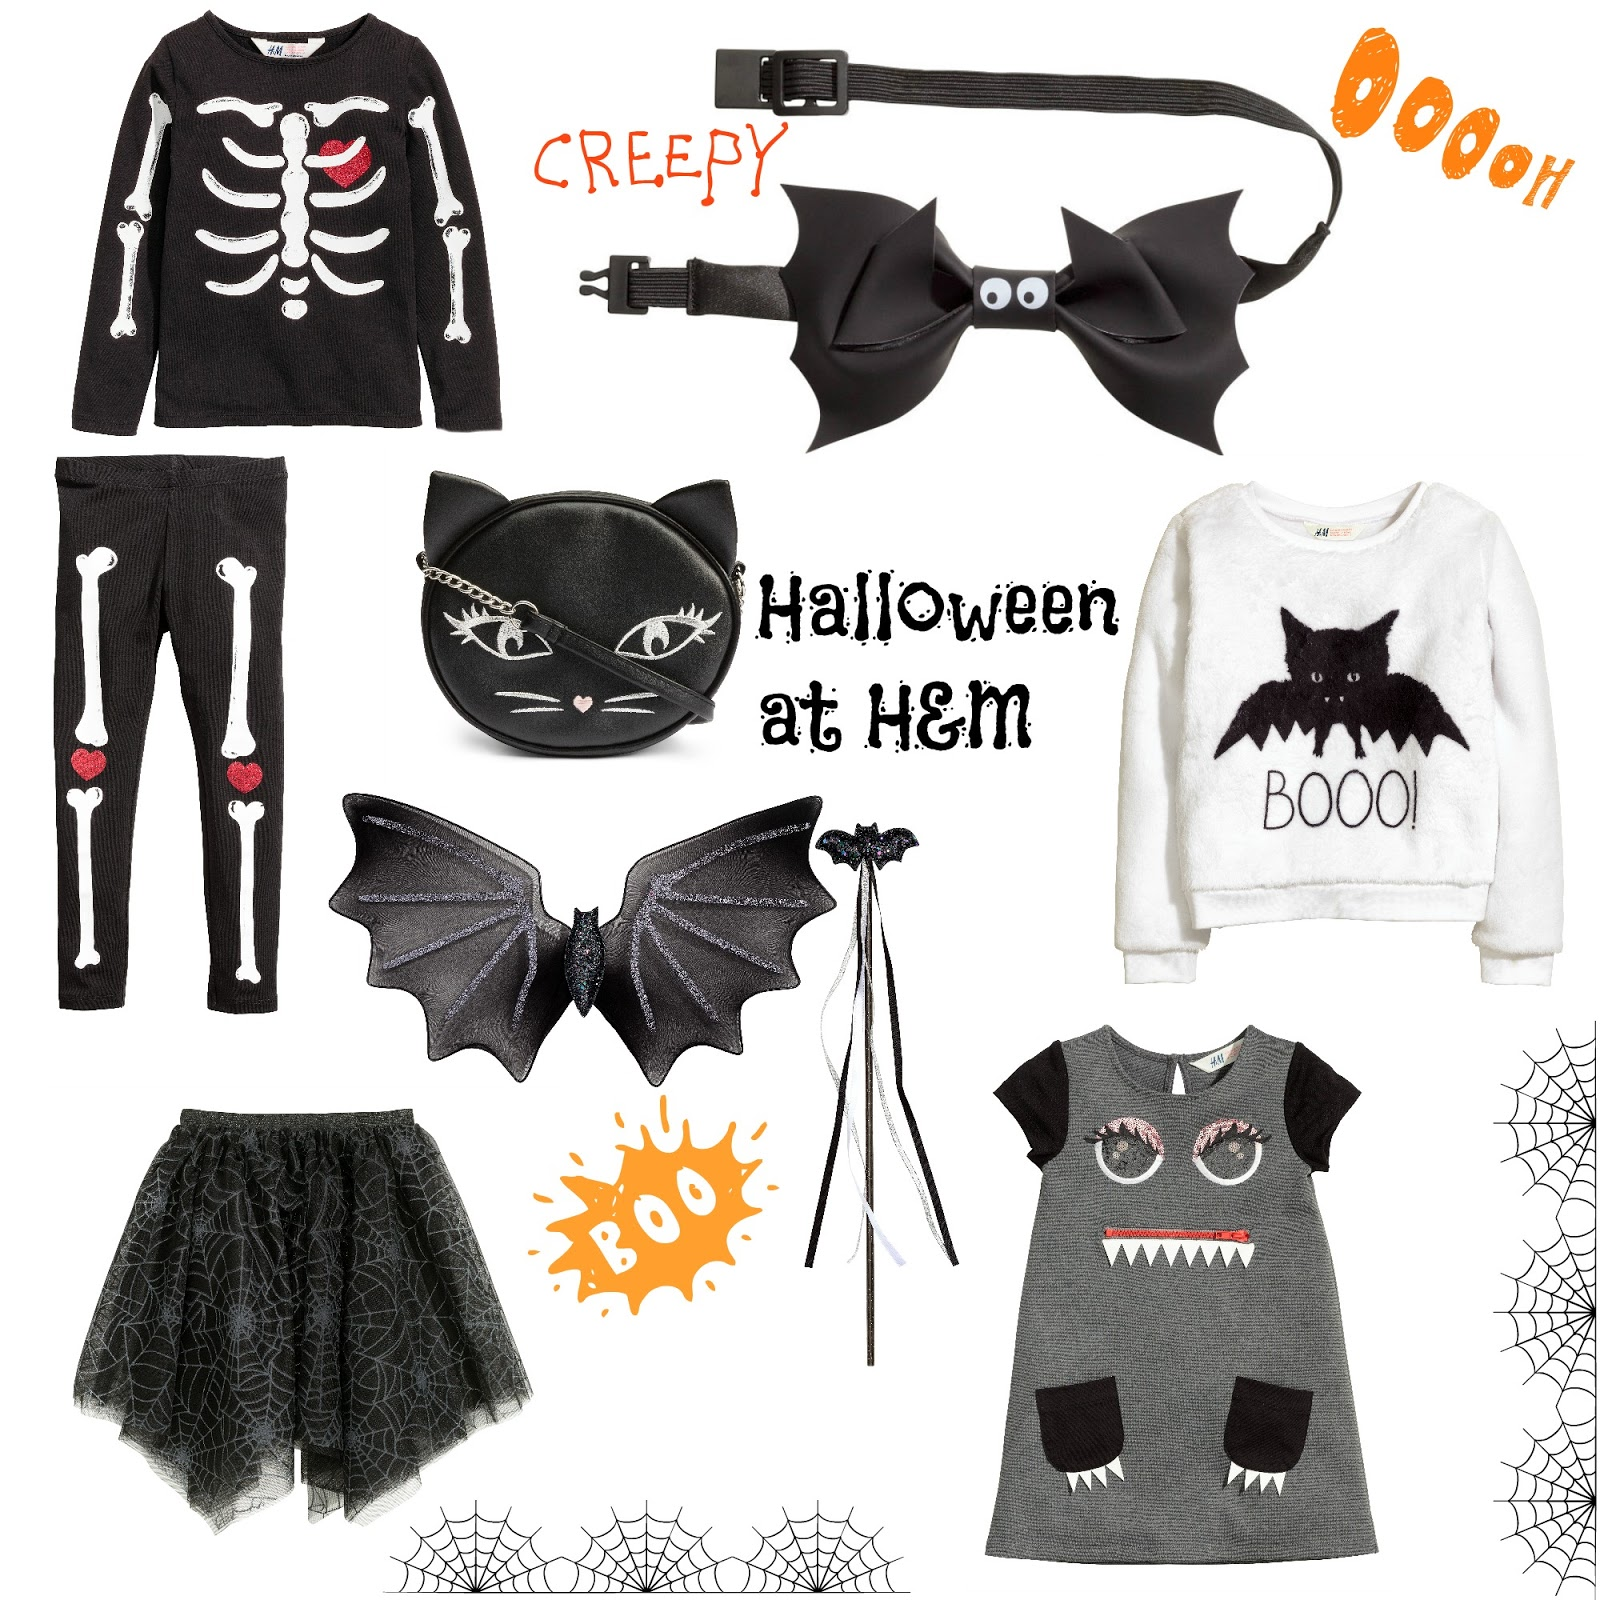 V. I. BUYS: More treat than trick - stylish Halloween style for kids at H&M, halloween, halloween dress up, H&M, kids fashion, fancy dress